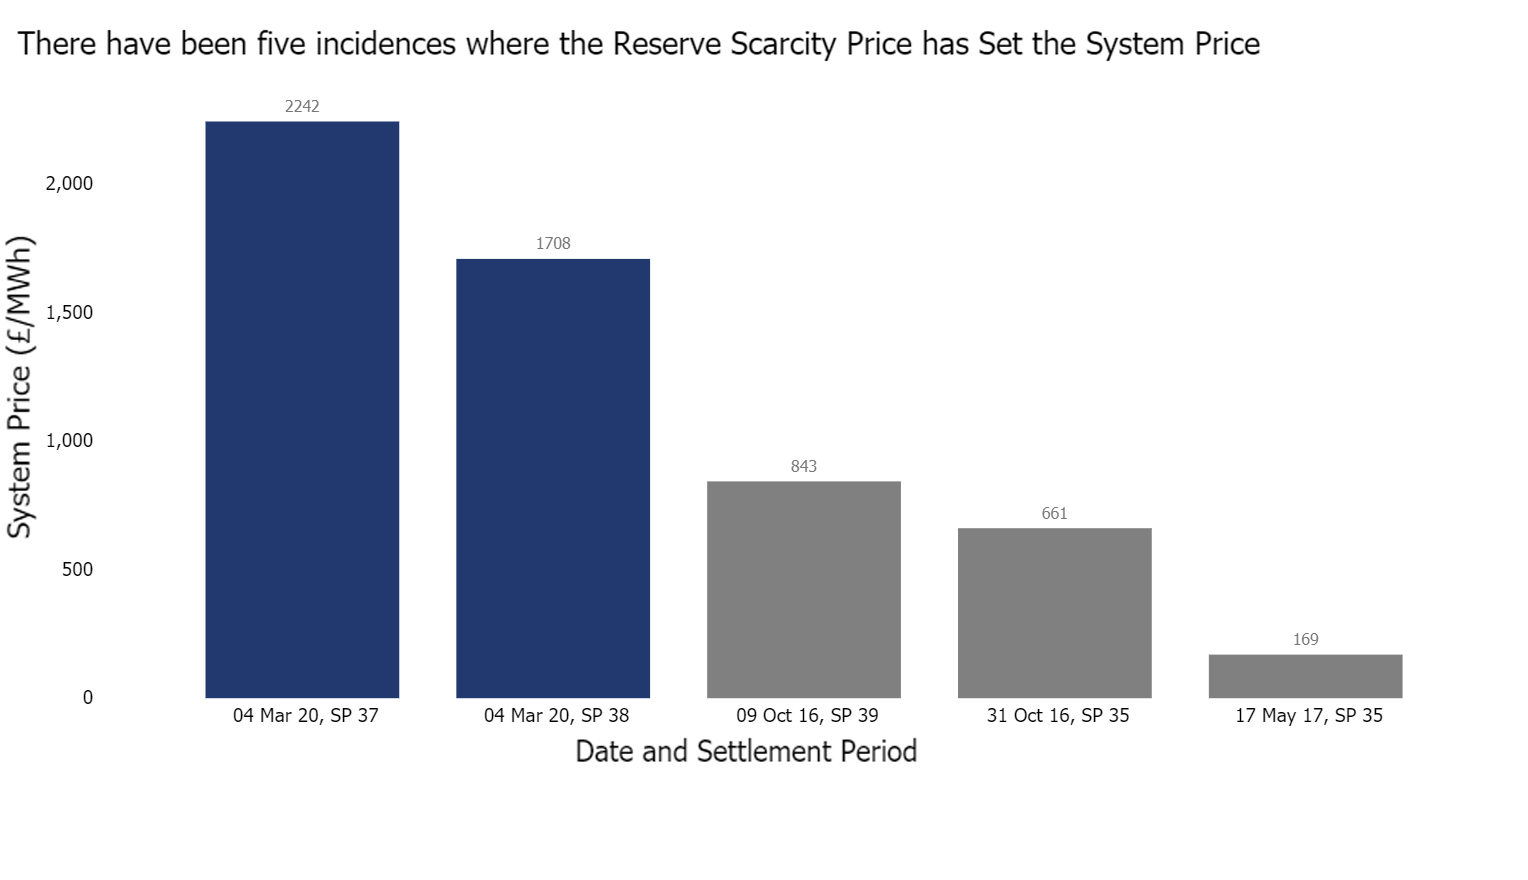 Graph of Reserve Scarcity Price setting the System Price